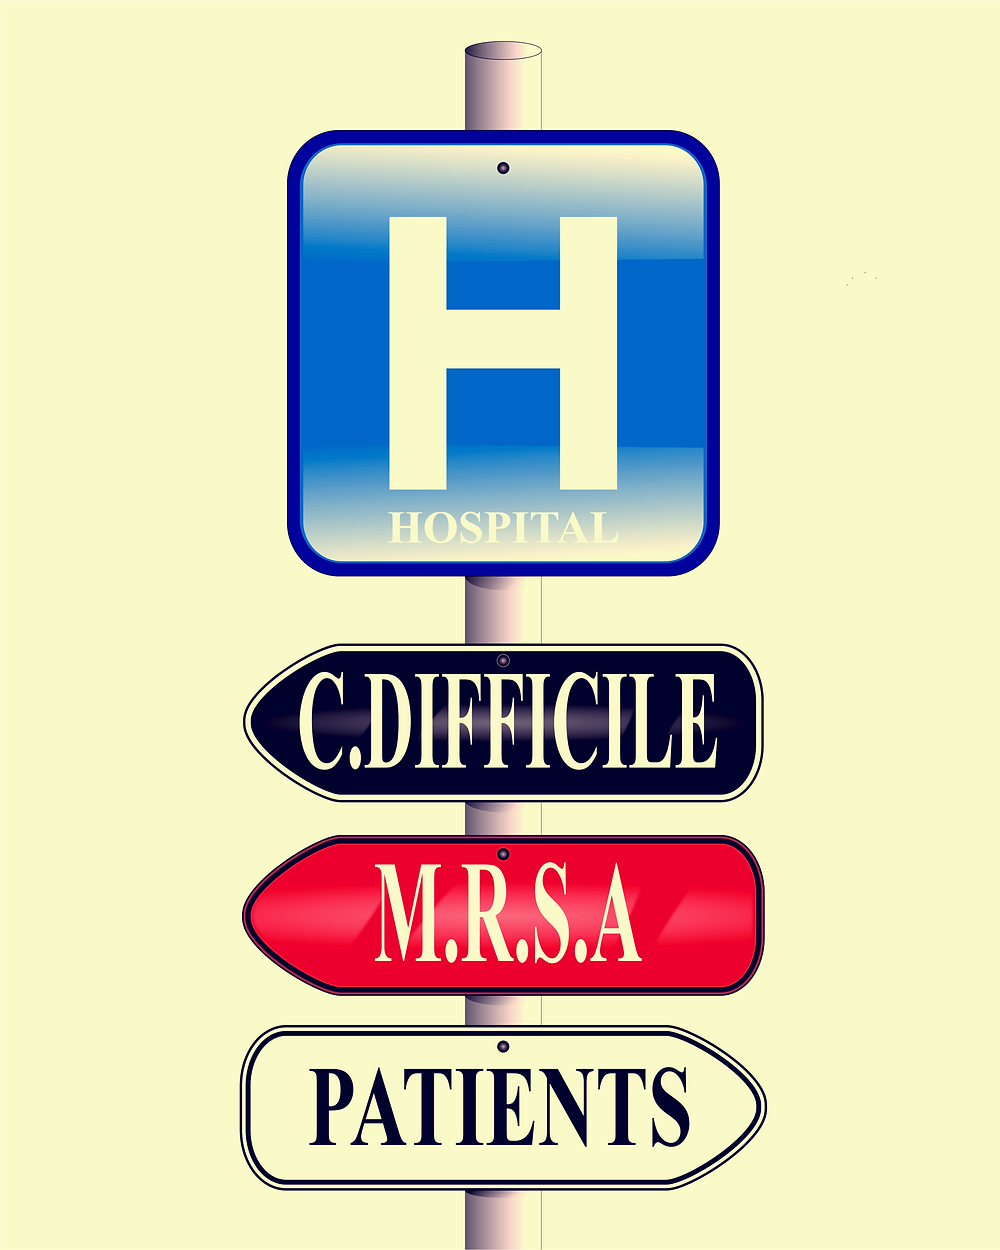 Hospital directional sign - MDRO